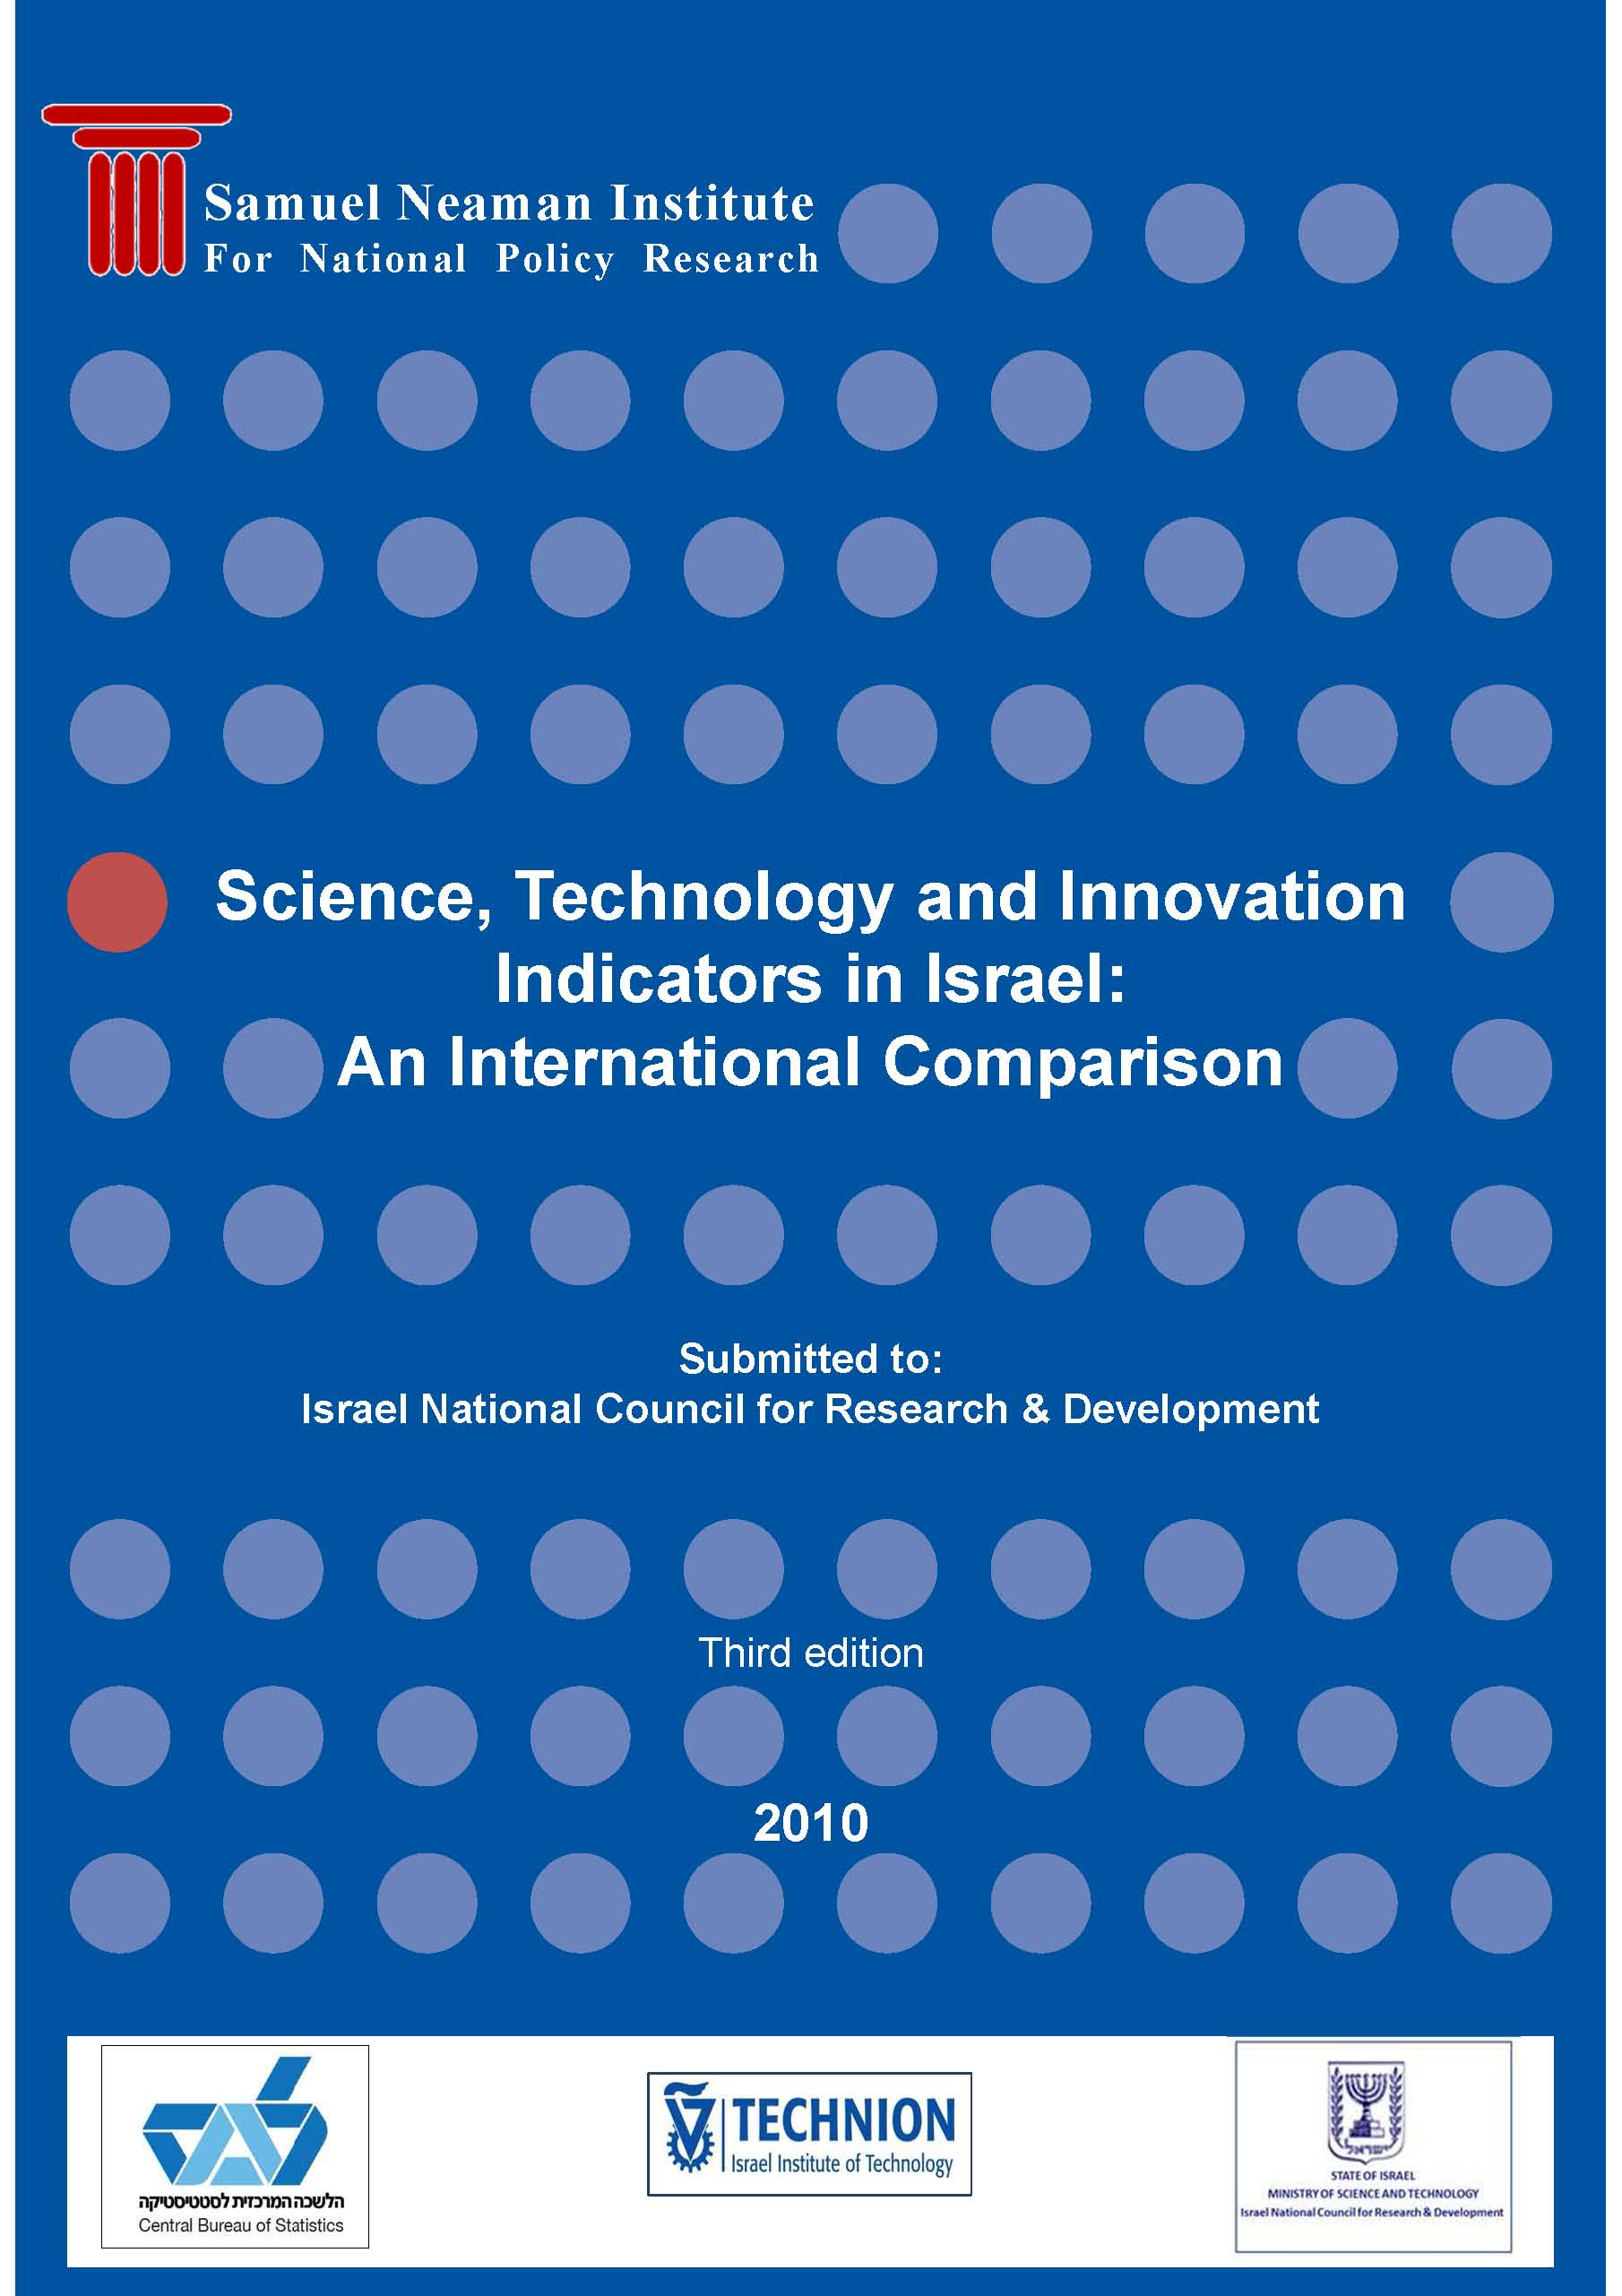 Science , Technology and Innovation Indicators in Israel: An International Comparison (Third edition) English version